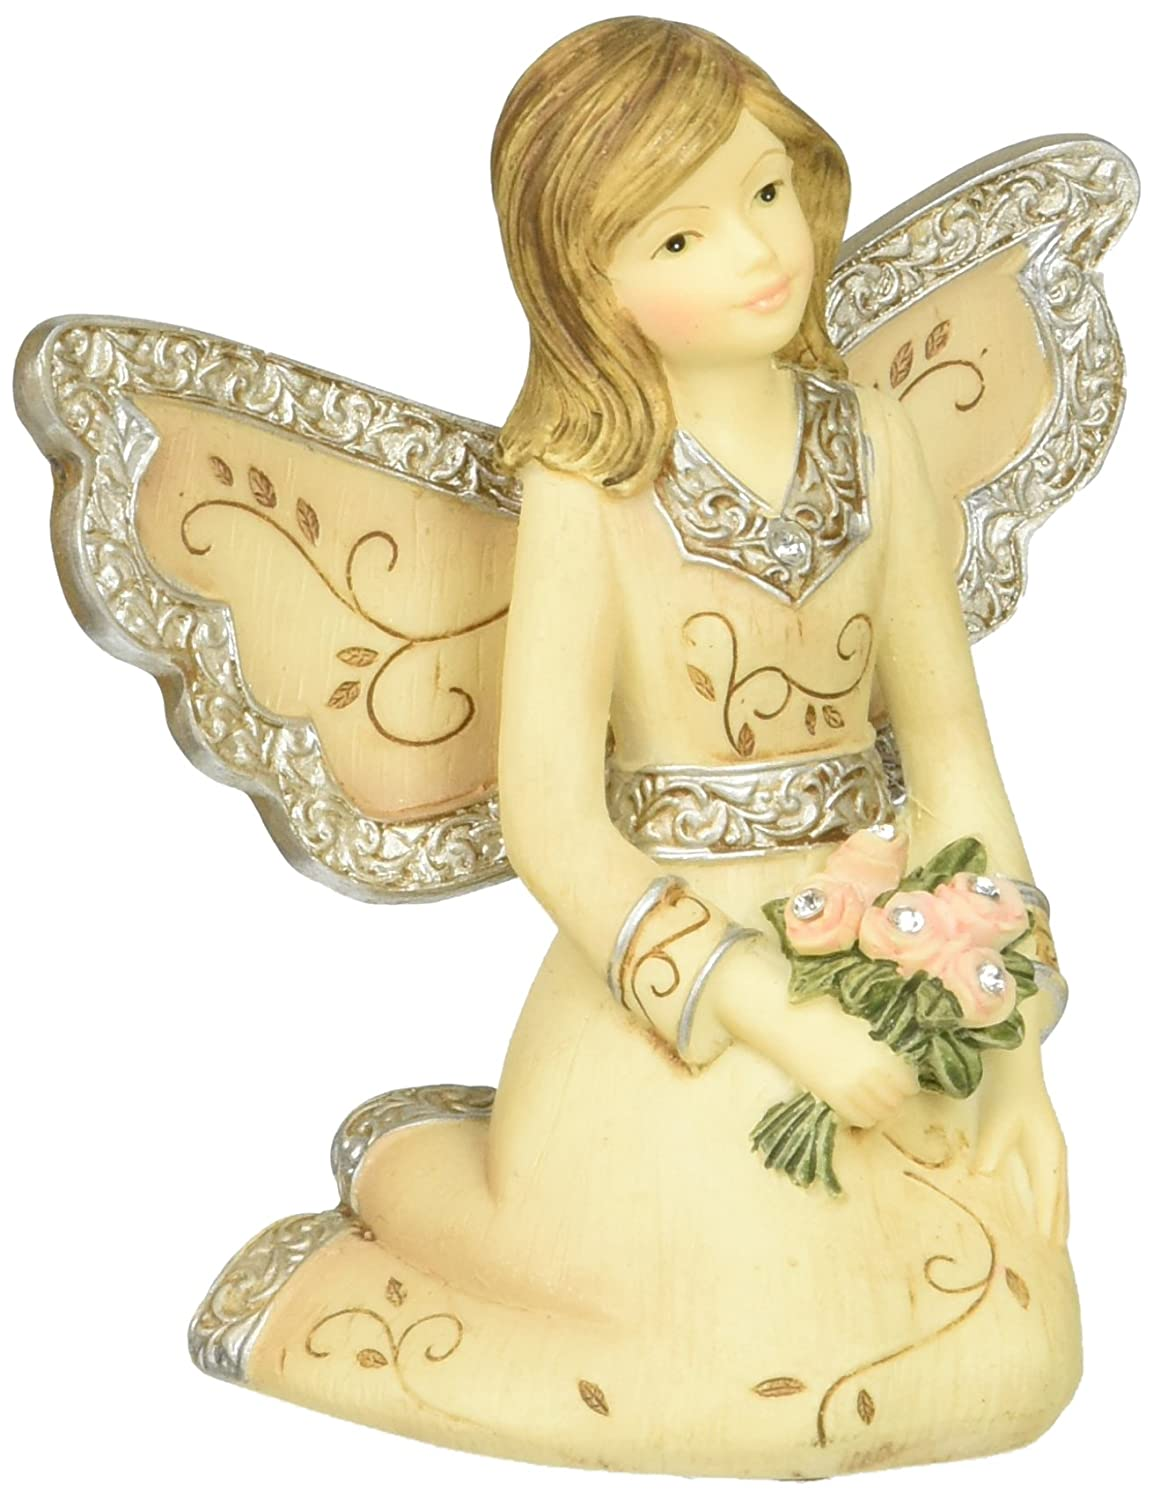 Elements April Monthly Angel Figurine, Includes Diamond Birthstone, 3-Inch